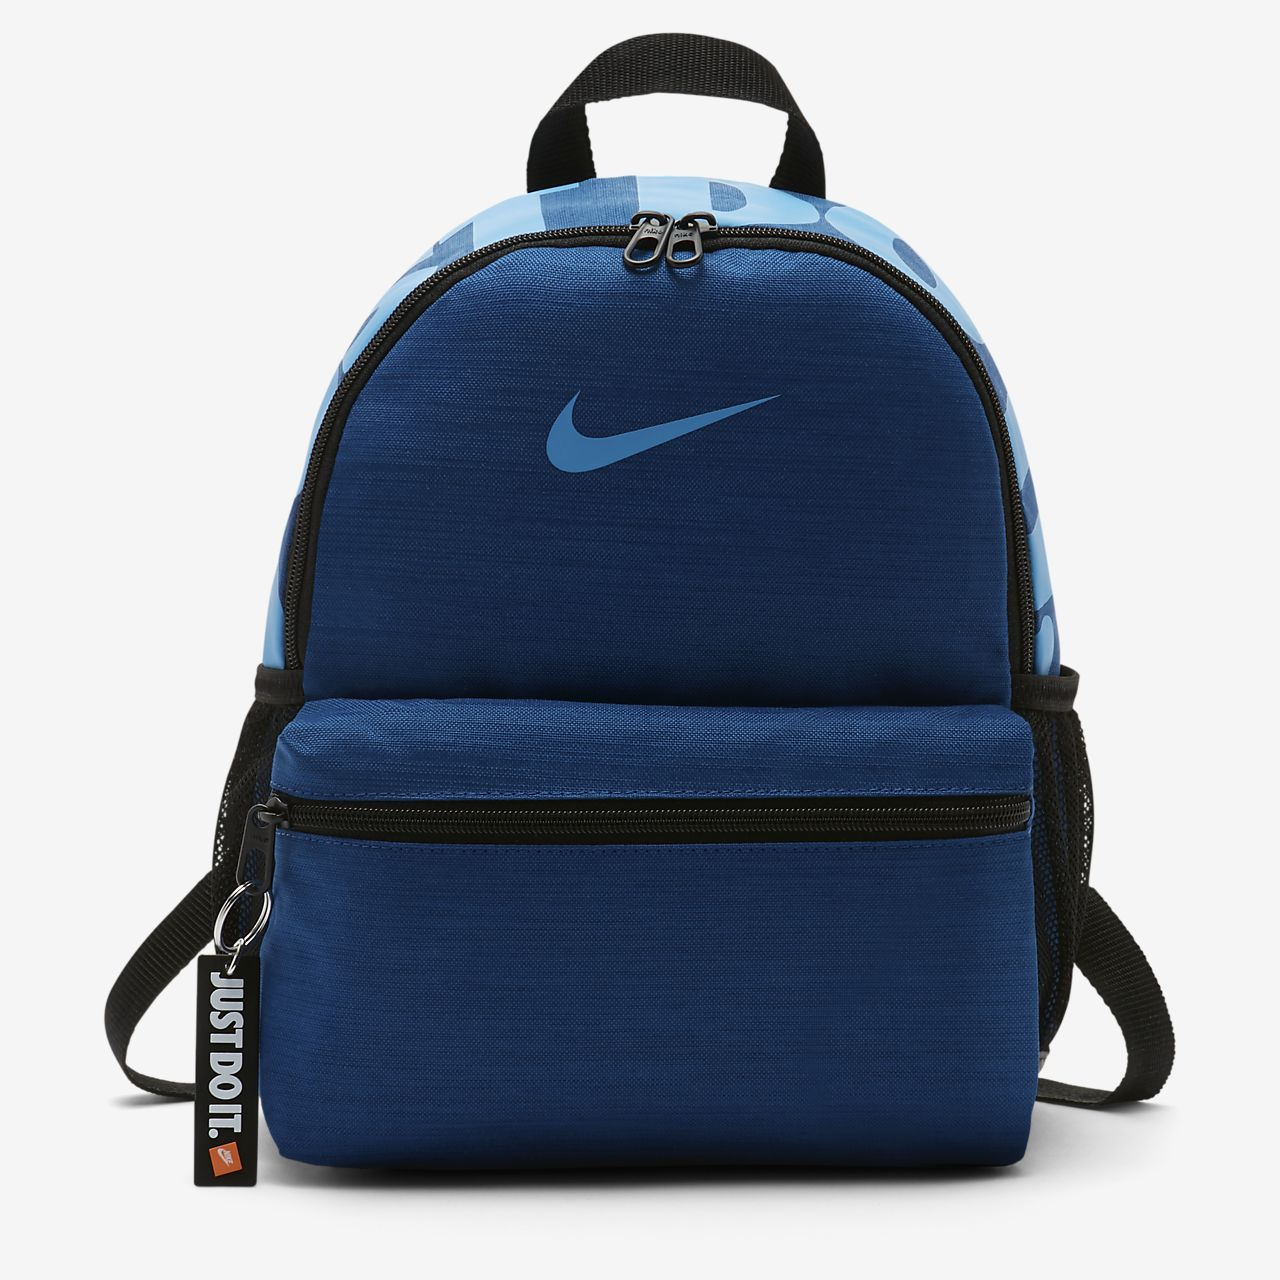 a27d1acda7c Nike Brasilia Just Do It Kids  Backpack (Mini). Nike.com LU